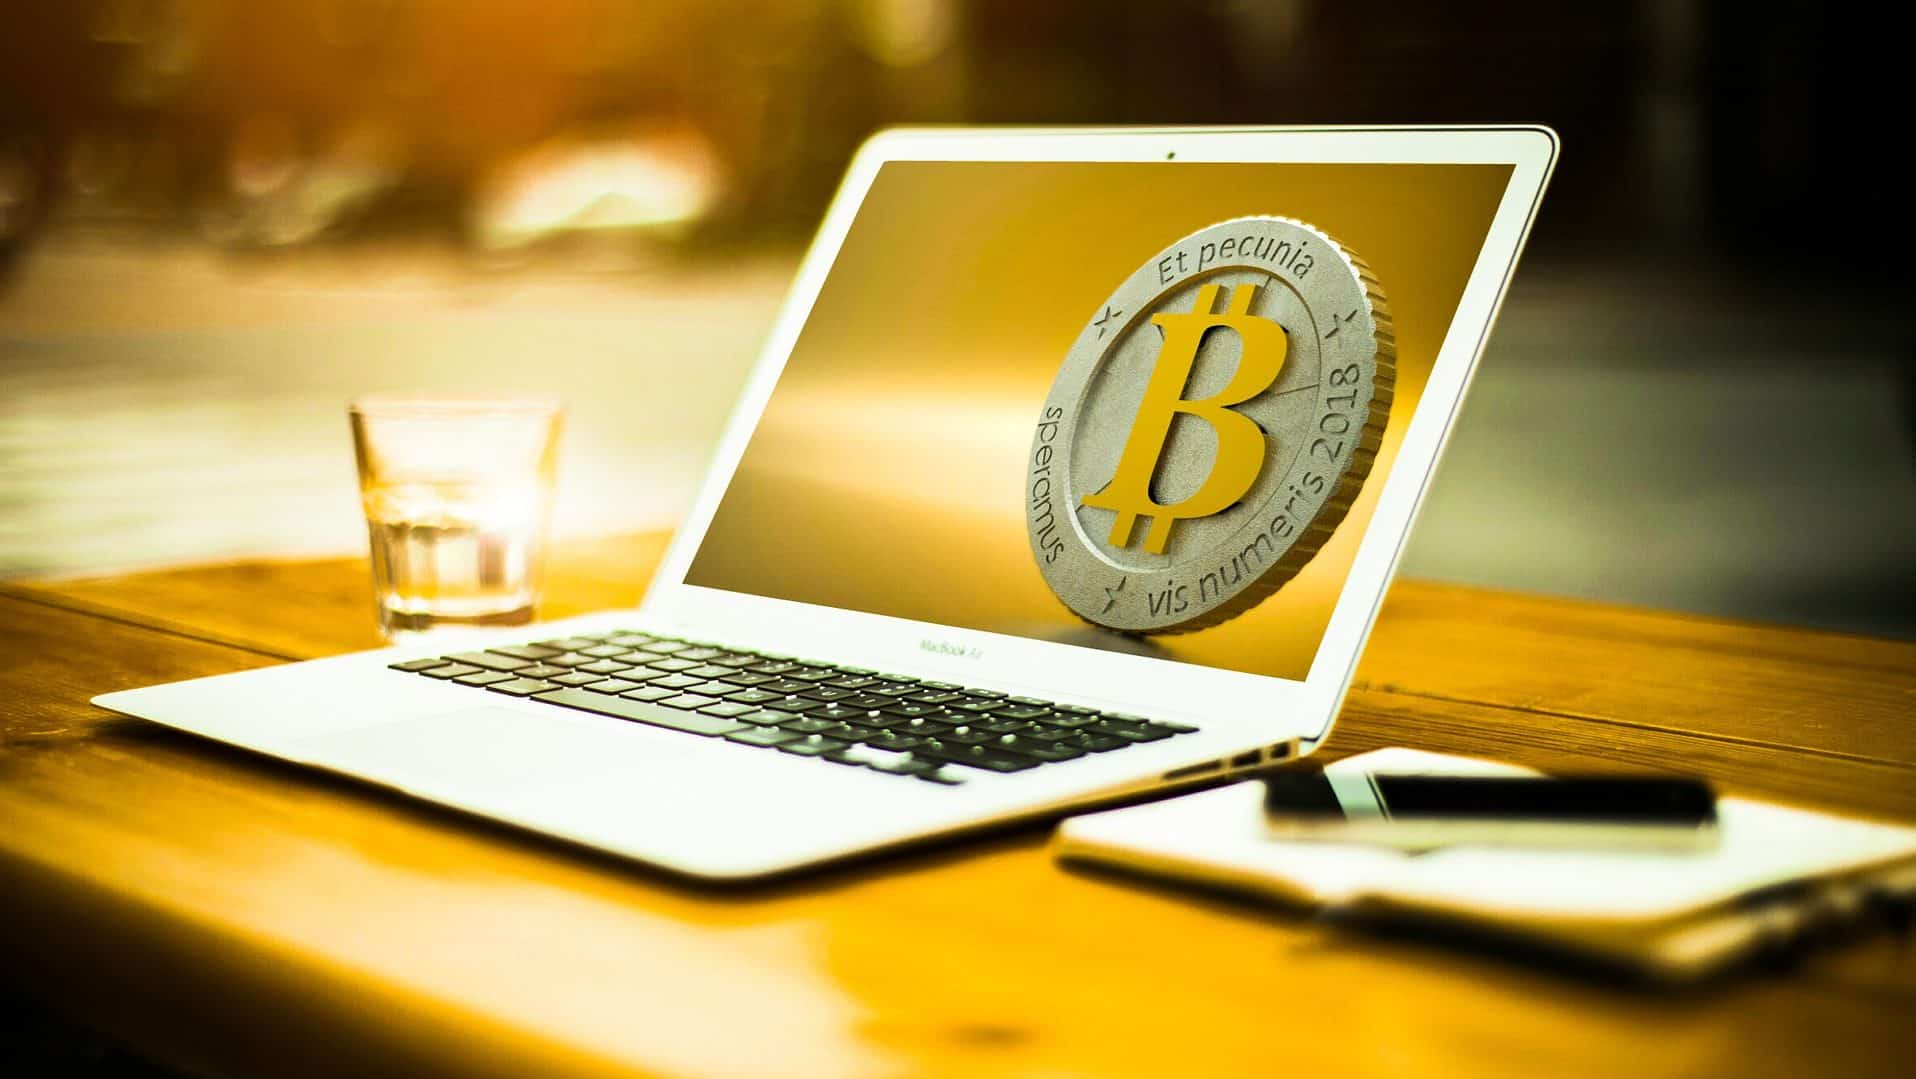 What are the advantages of investing in bitcoin?